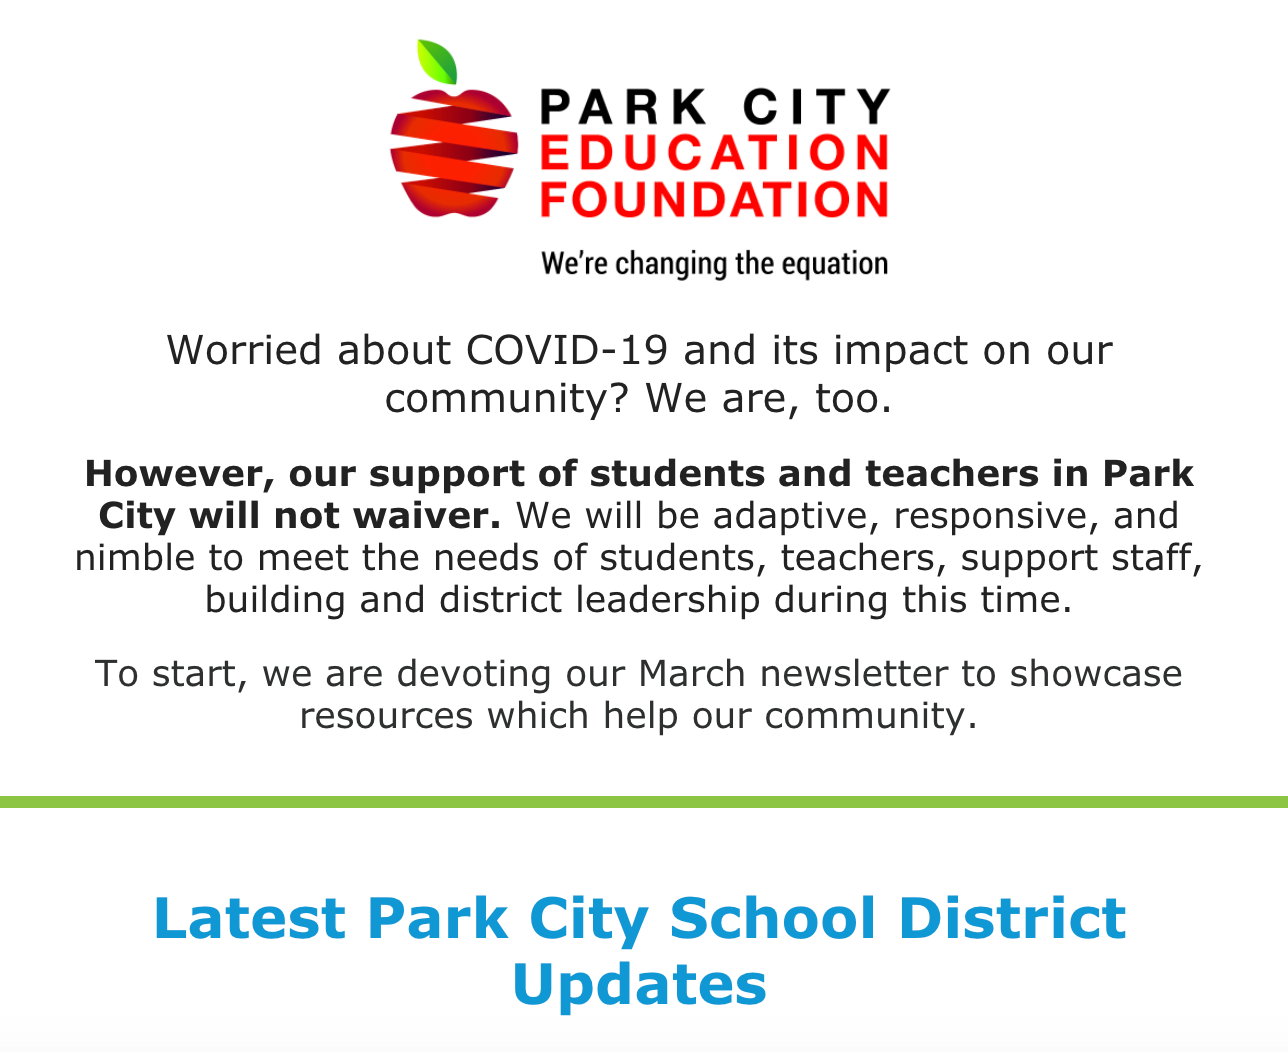 PCEF Newsletter March 2020